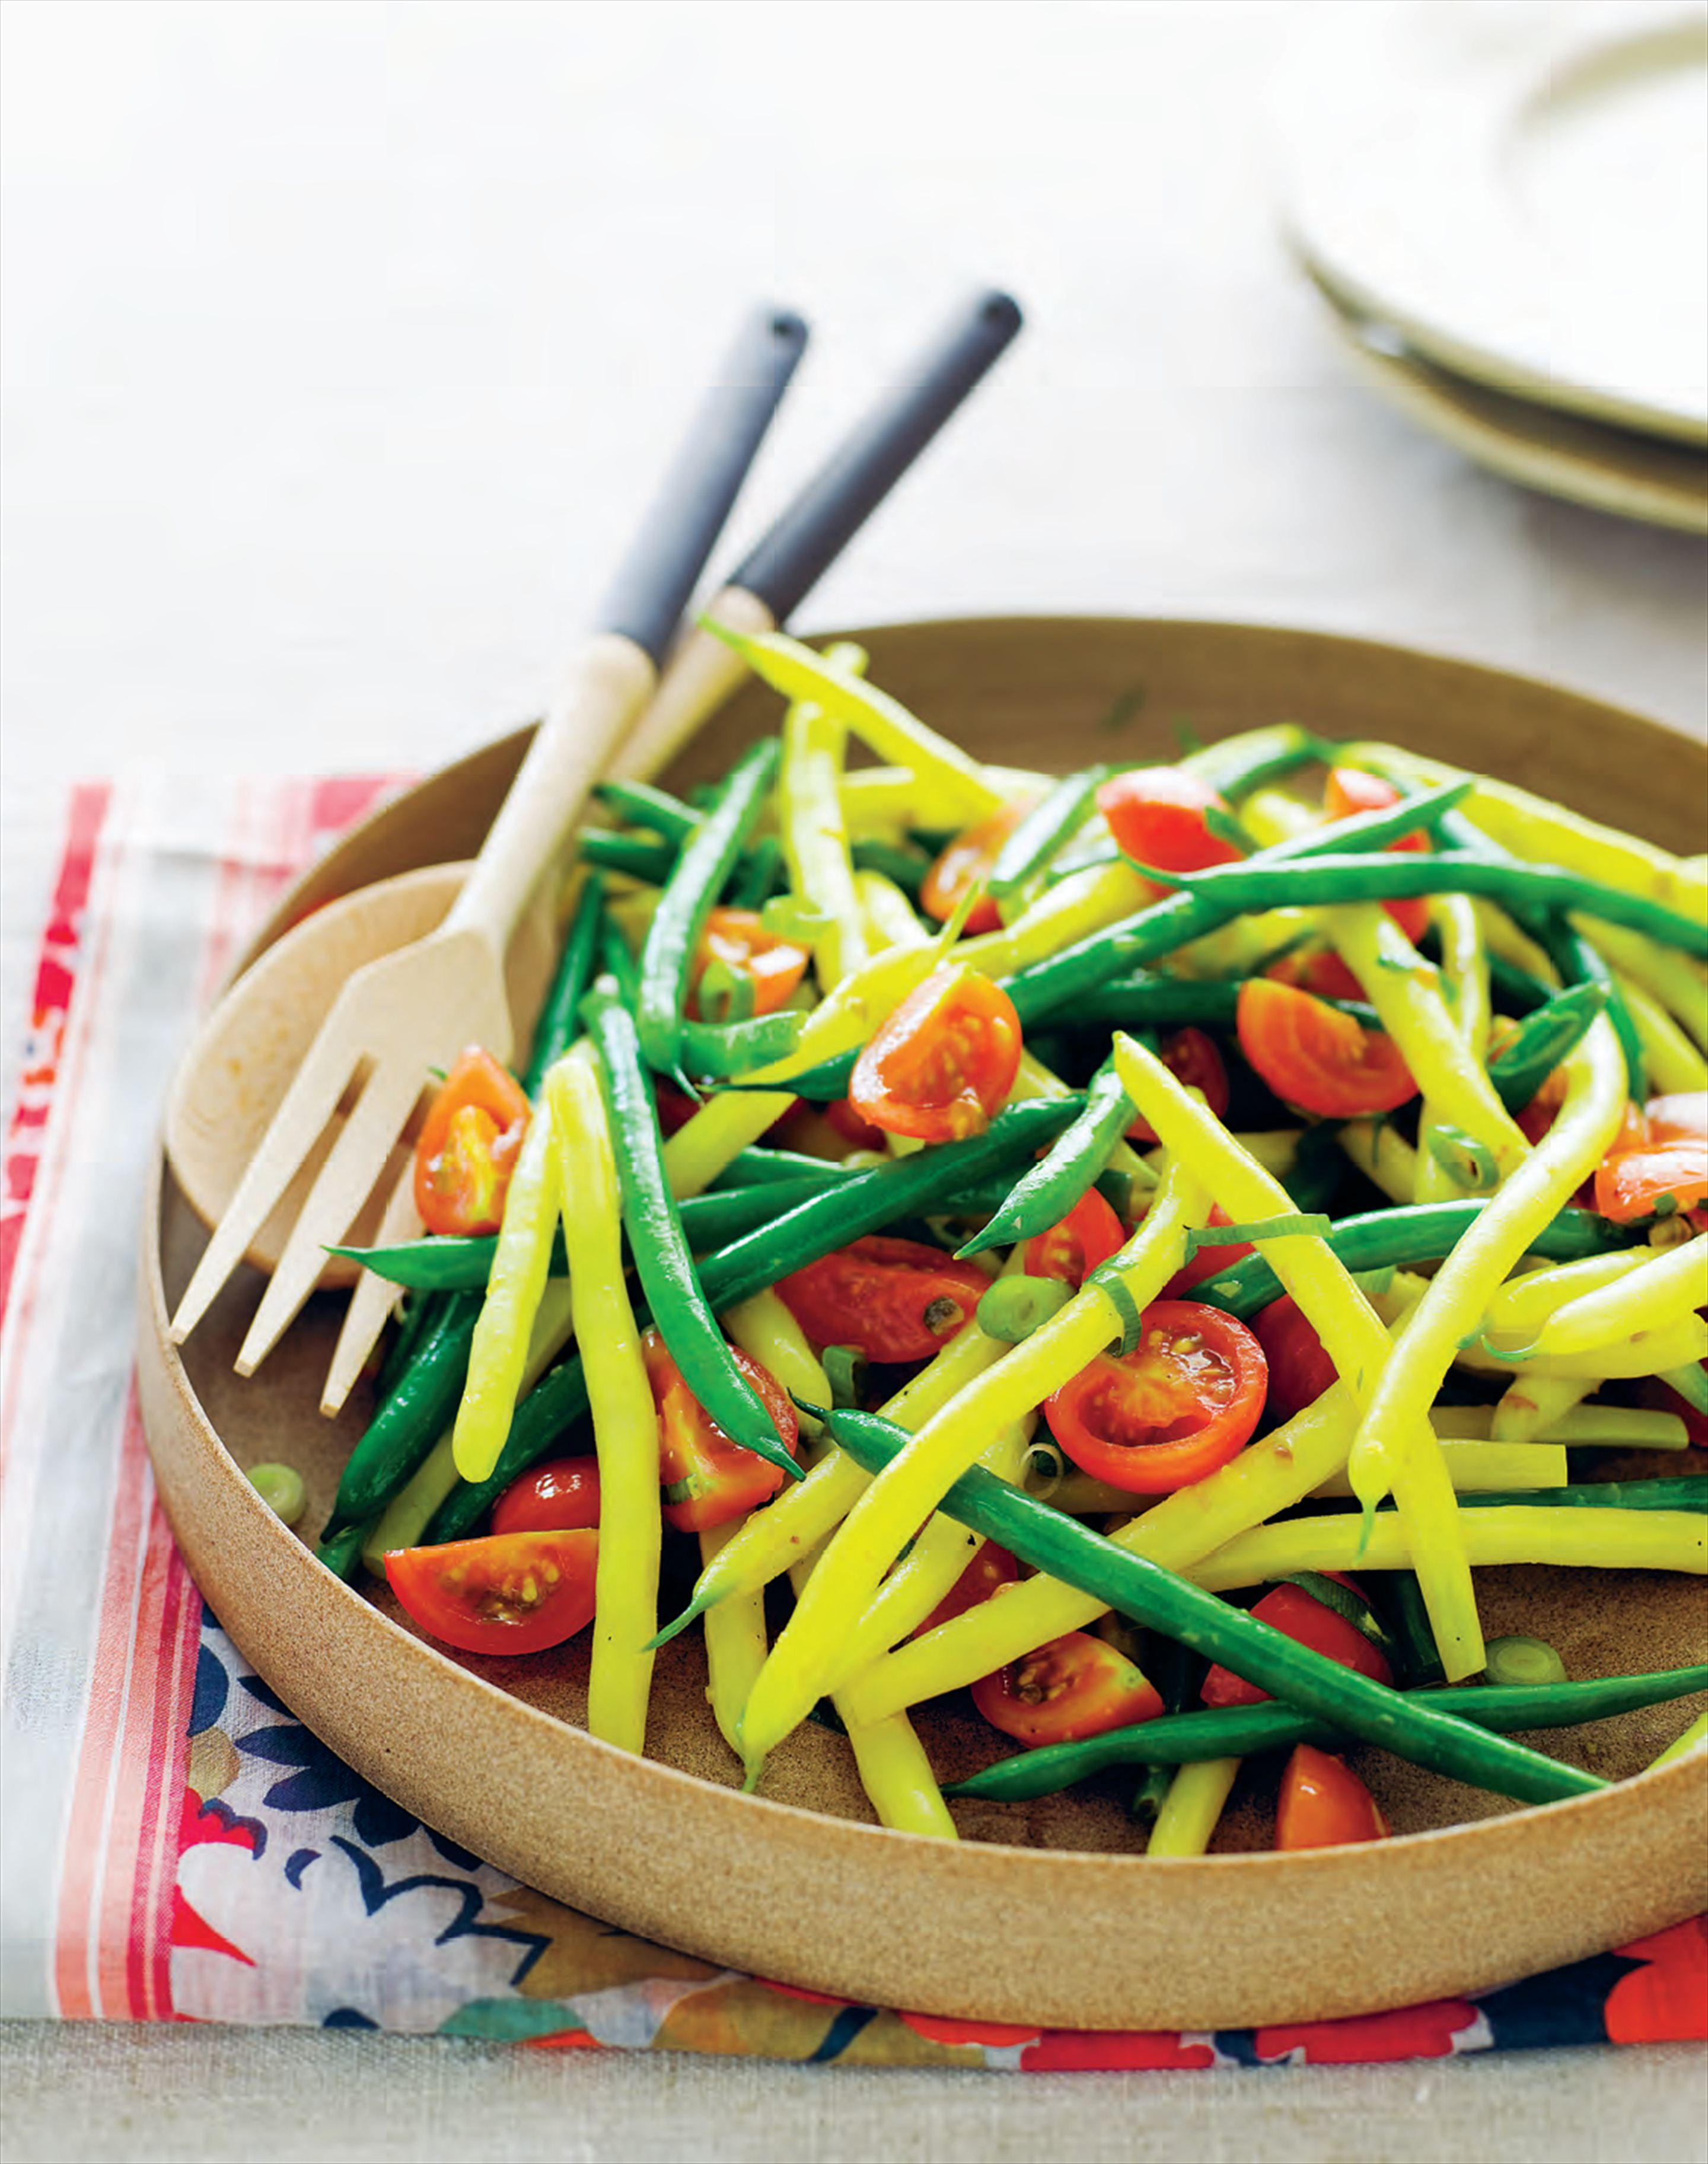 Green and yellow bean salad